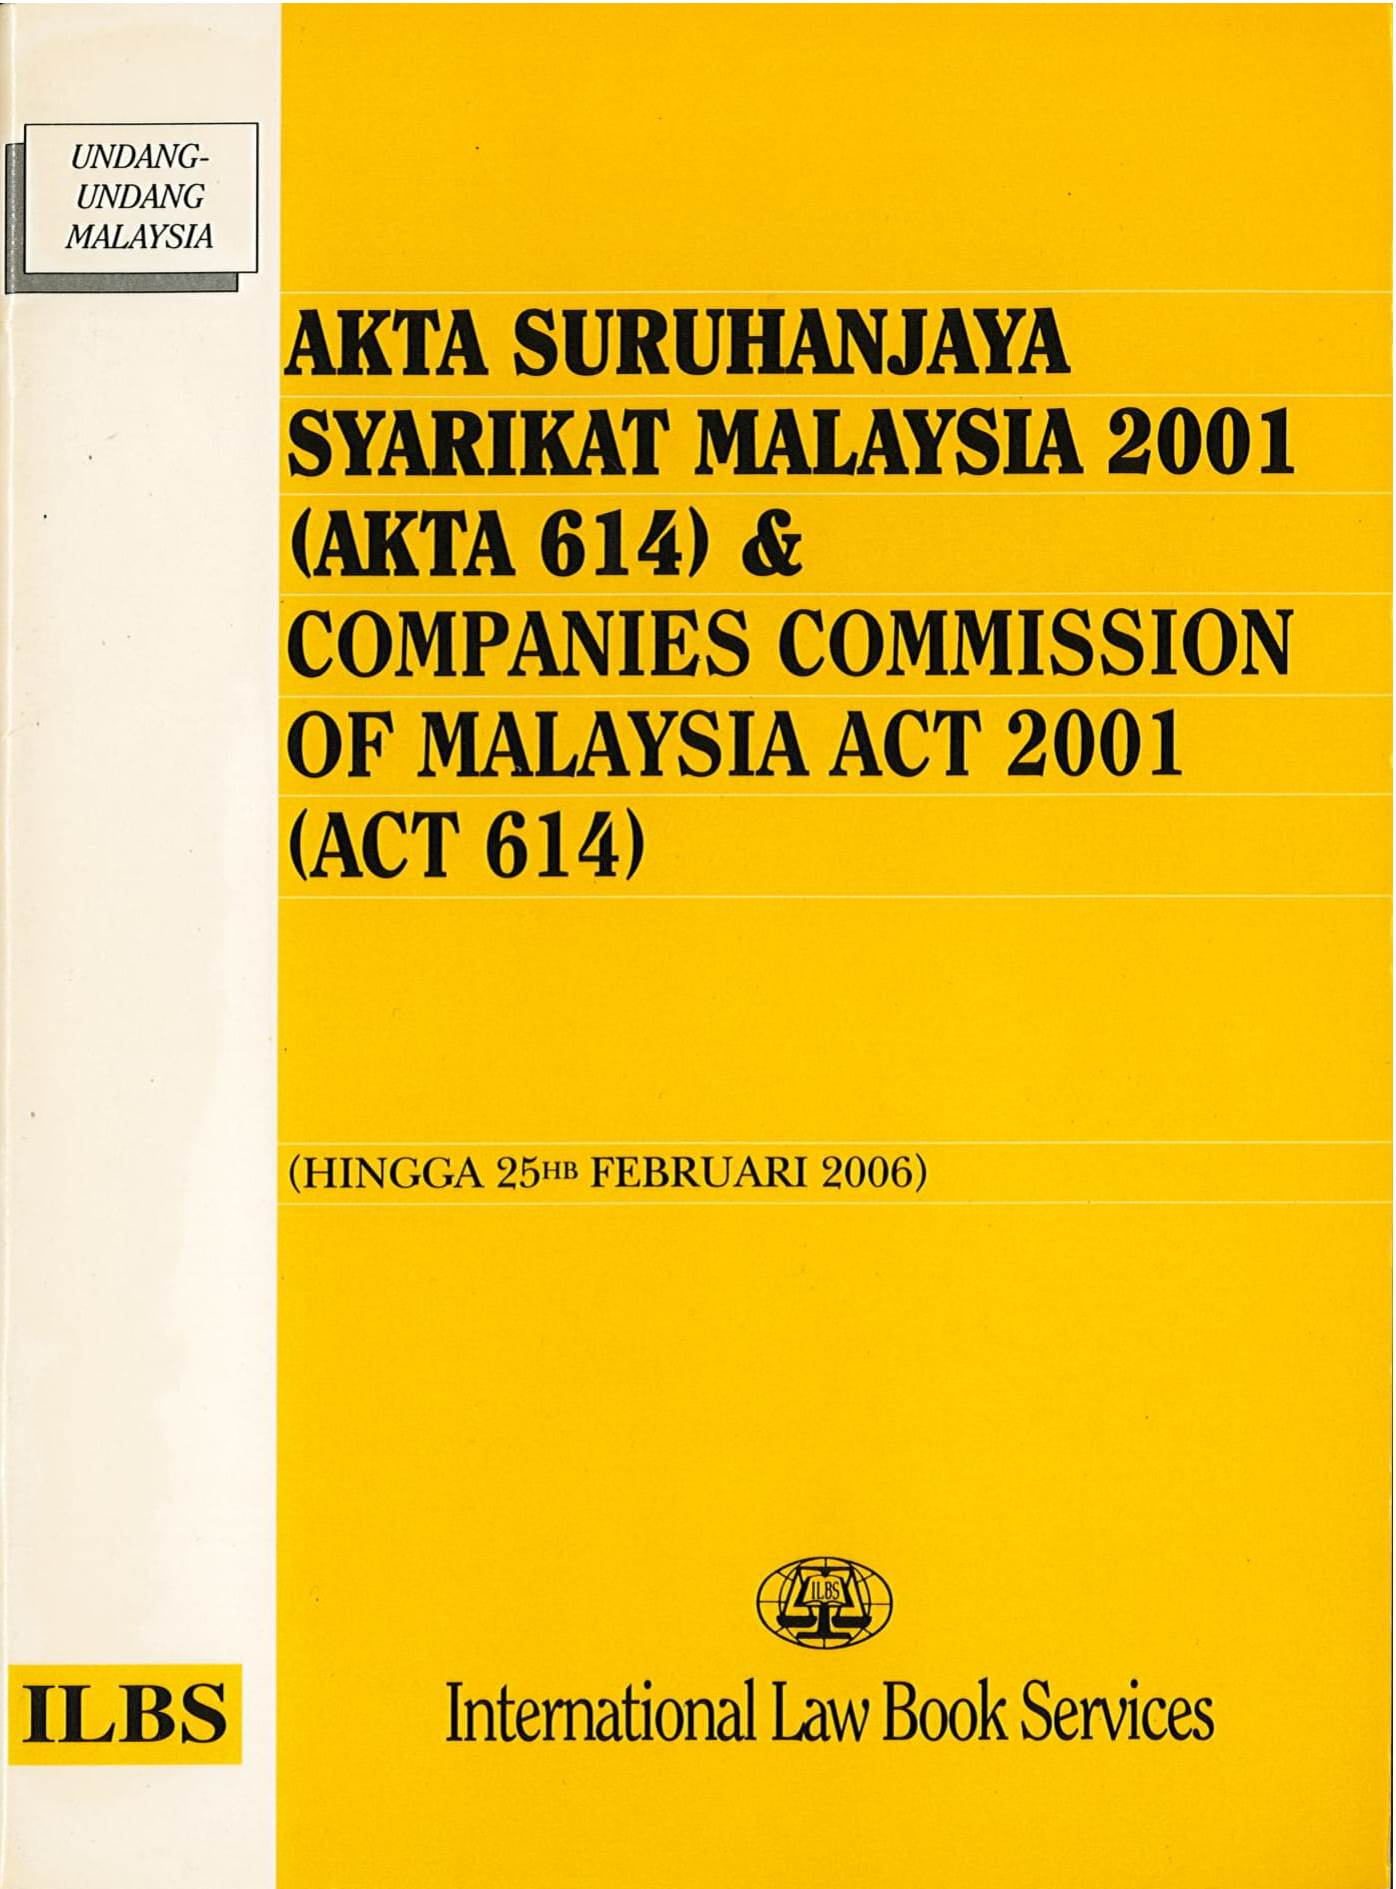 COMPANIES COMMISSION OF MALAYSIA ACT 2001 (ACT 614) TOGETHER WITH MALAY VERSION